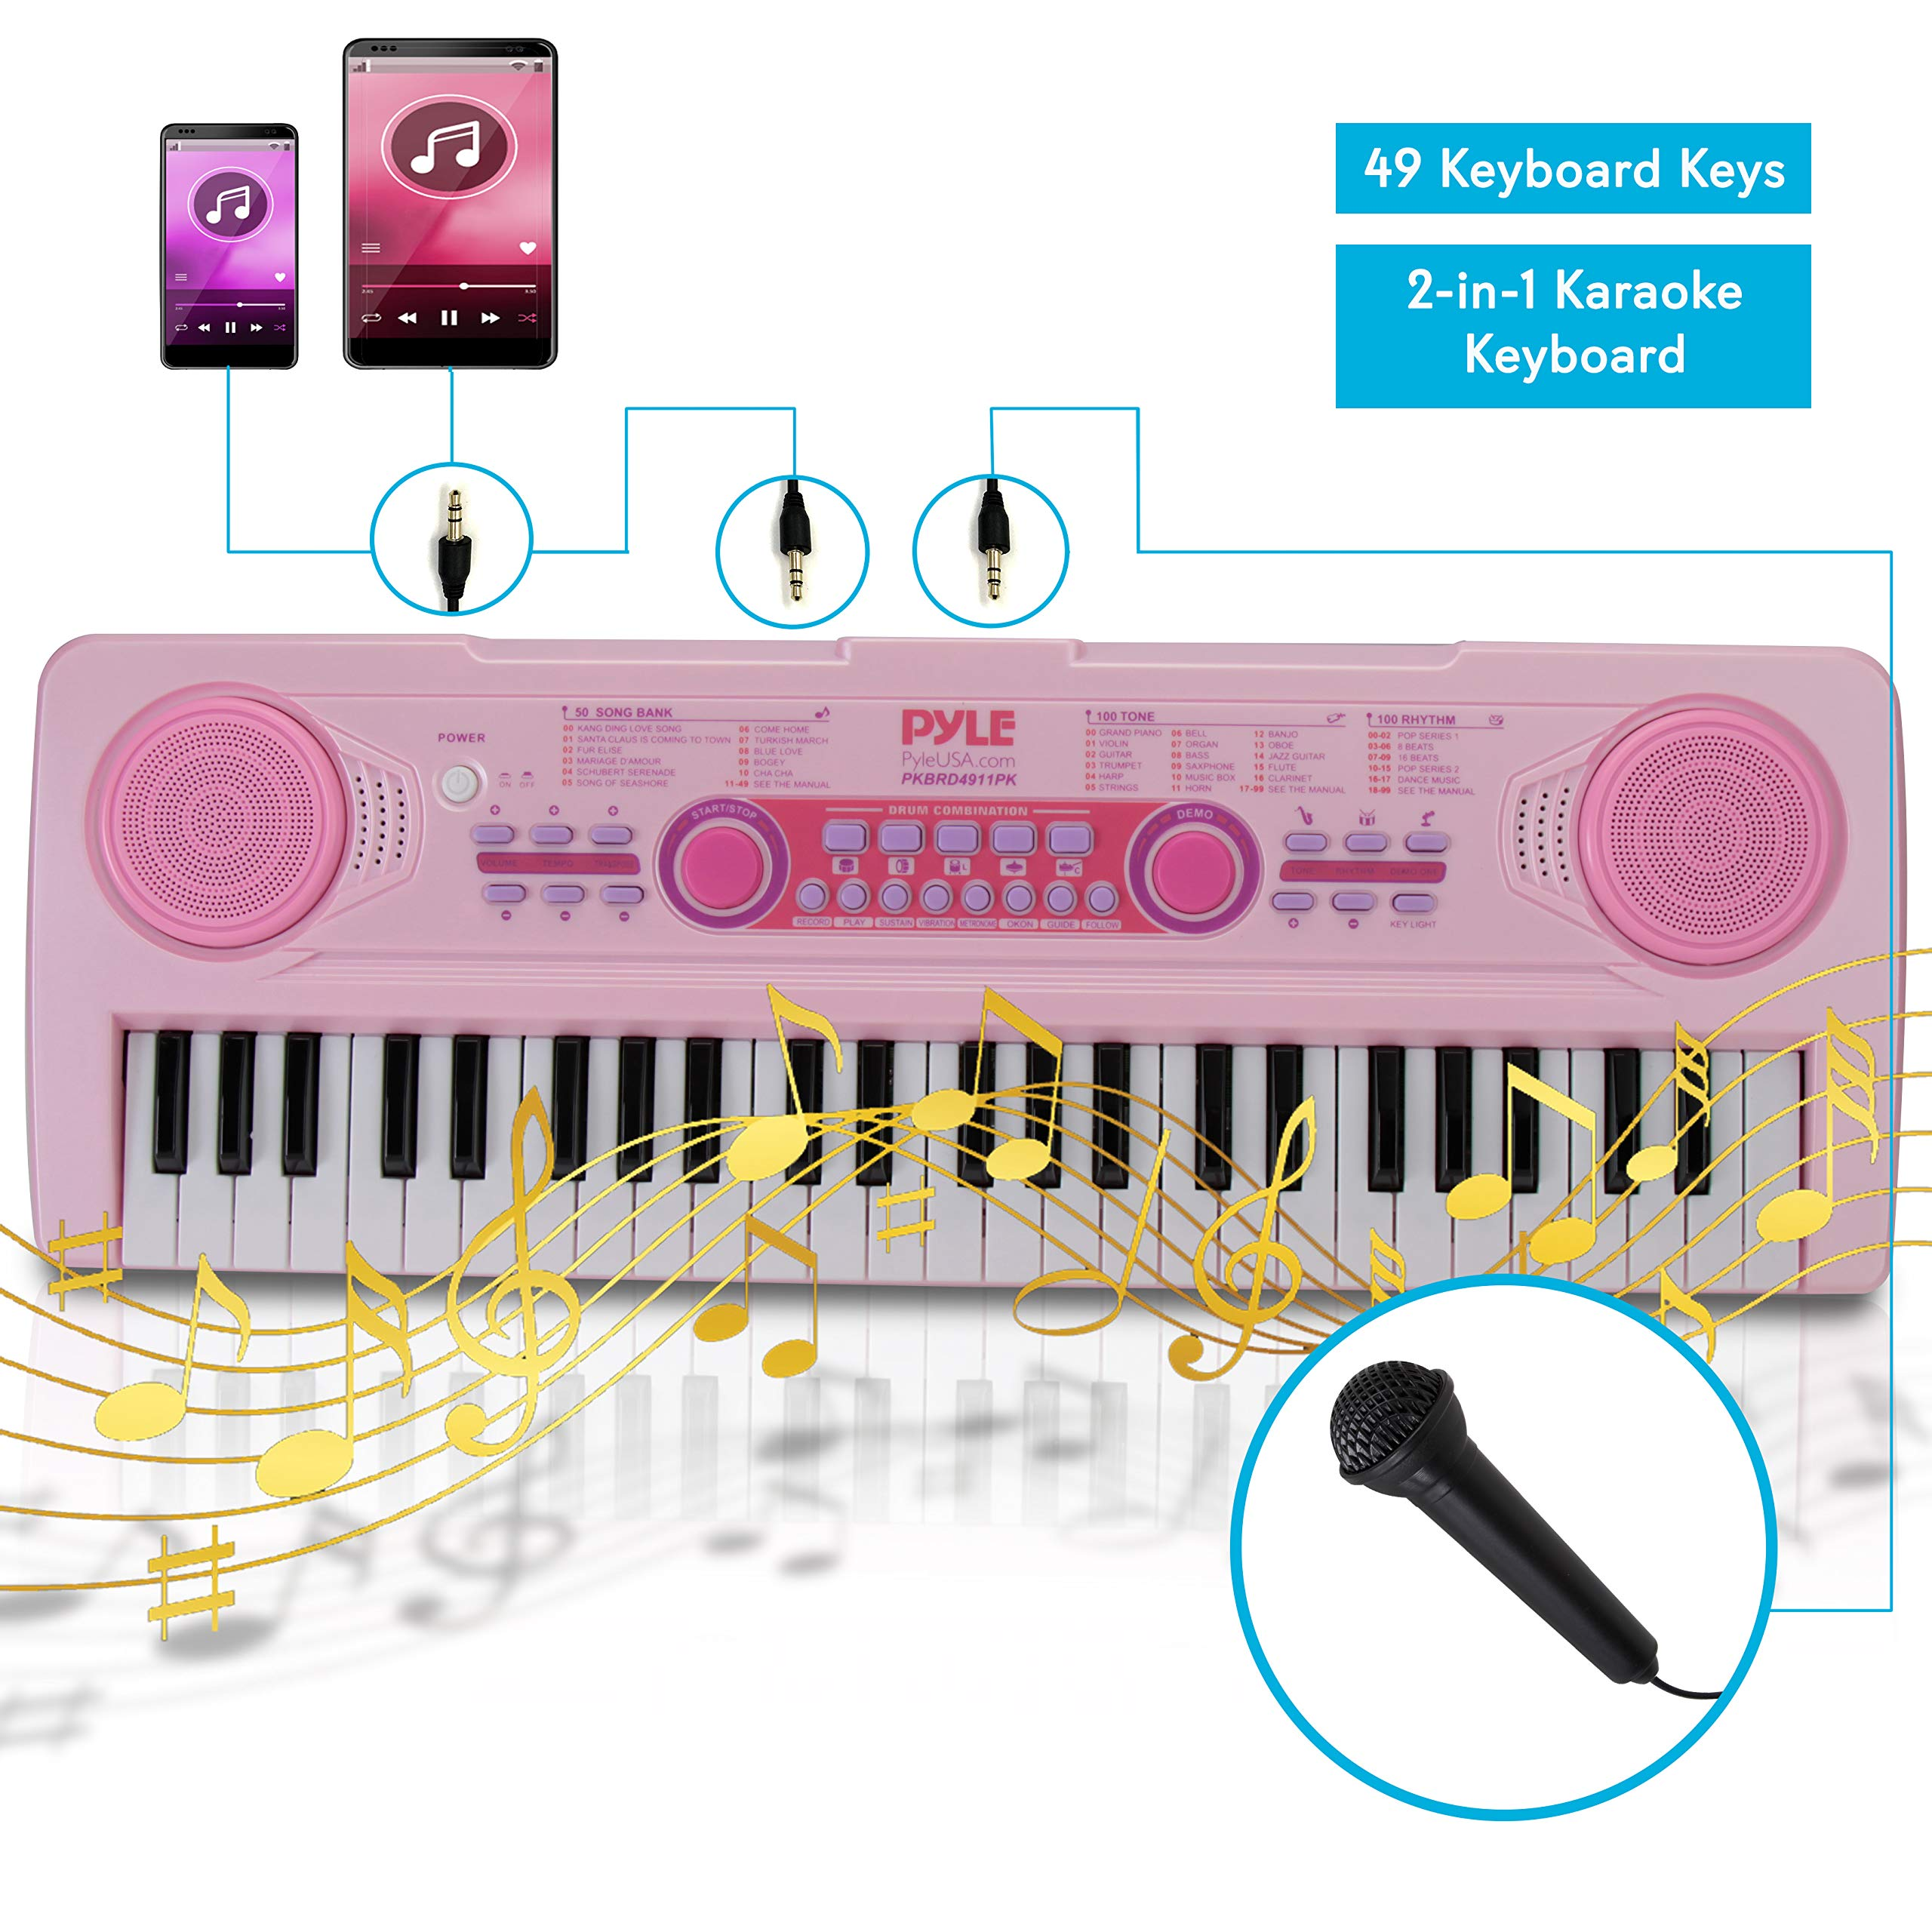 Electric Keyboard Piano for Kids-Portable 49 Key Electronic Musical Karaoke Keyboard, Learning Keyboard for Children w/Drum Pad, Recording, Microphone, Built-in Speaker-Pyle PKBRD4911PK (Pink) by Pyle